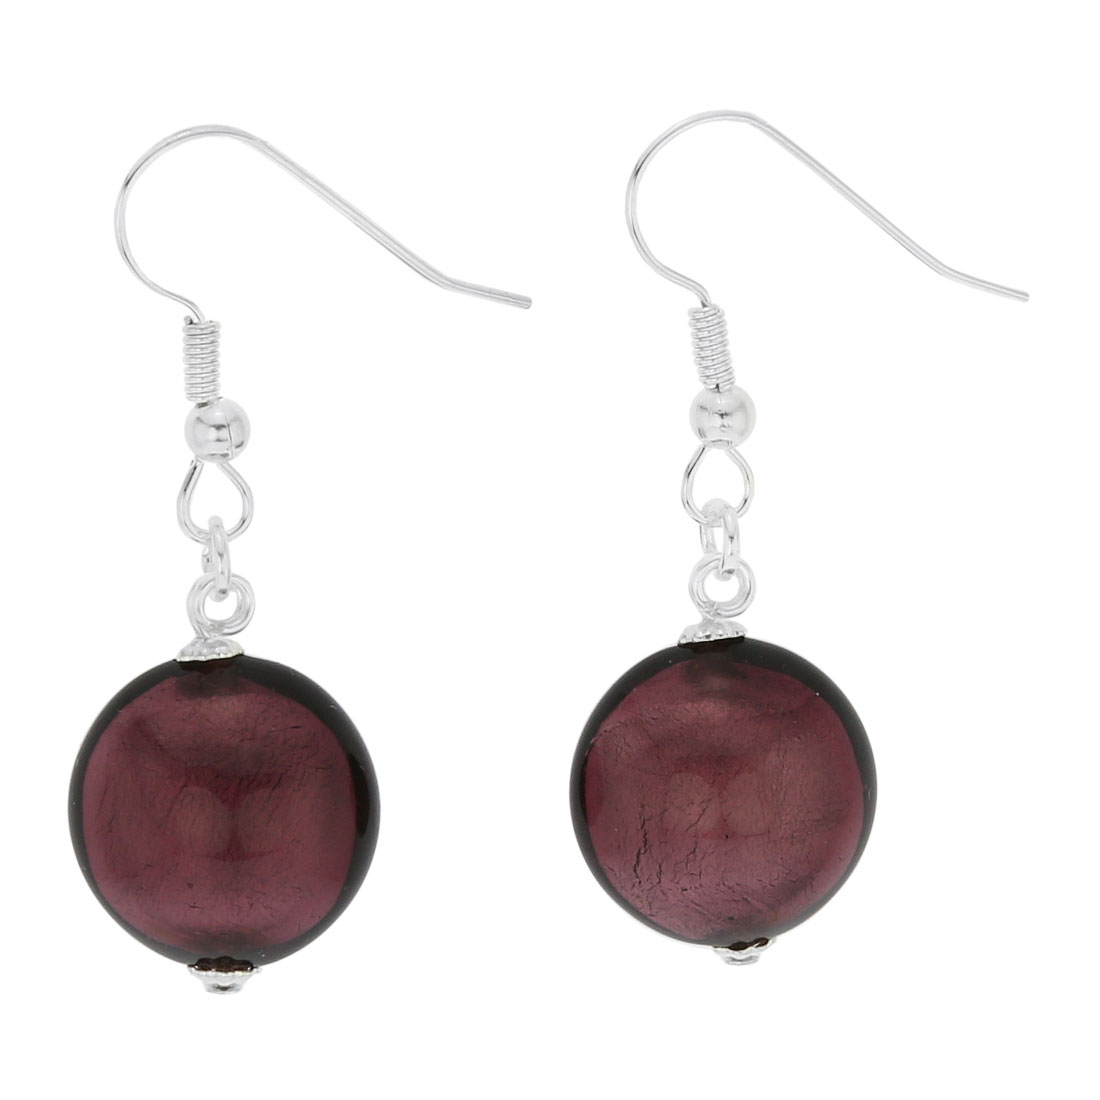 Antico Tesoro Disk Earrings - Silver Amethyst